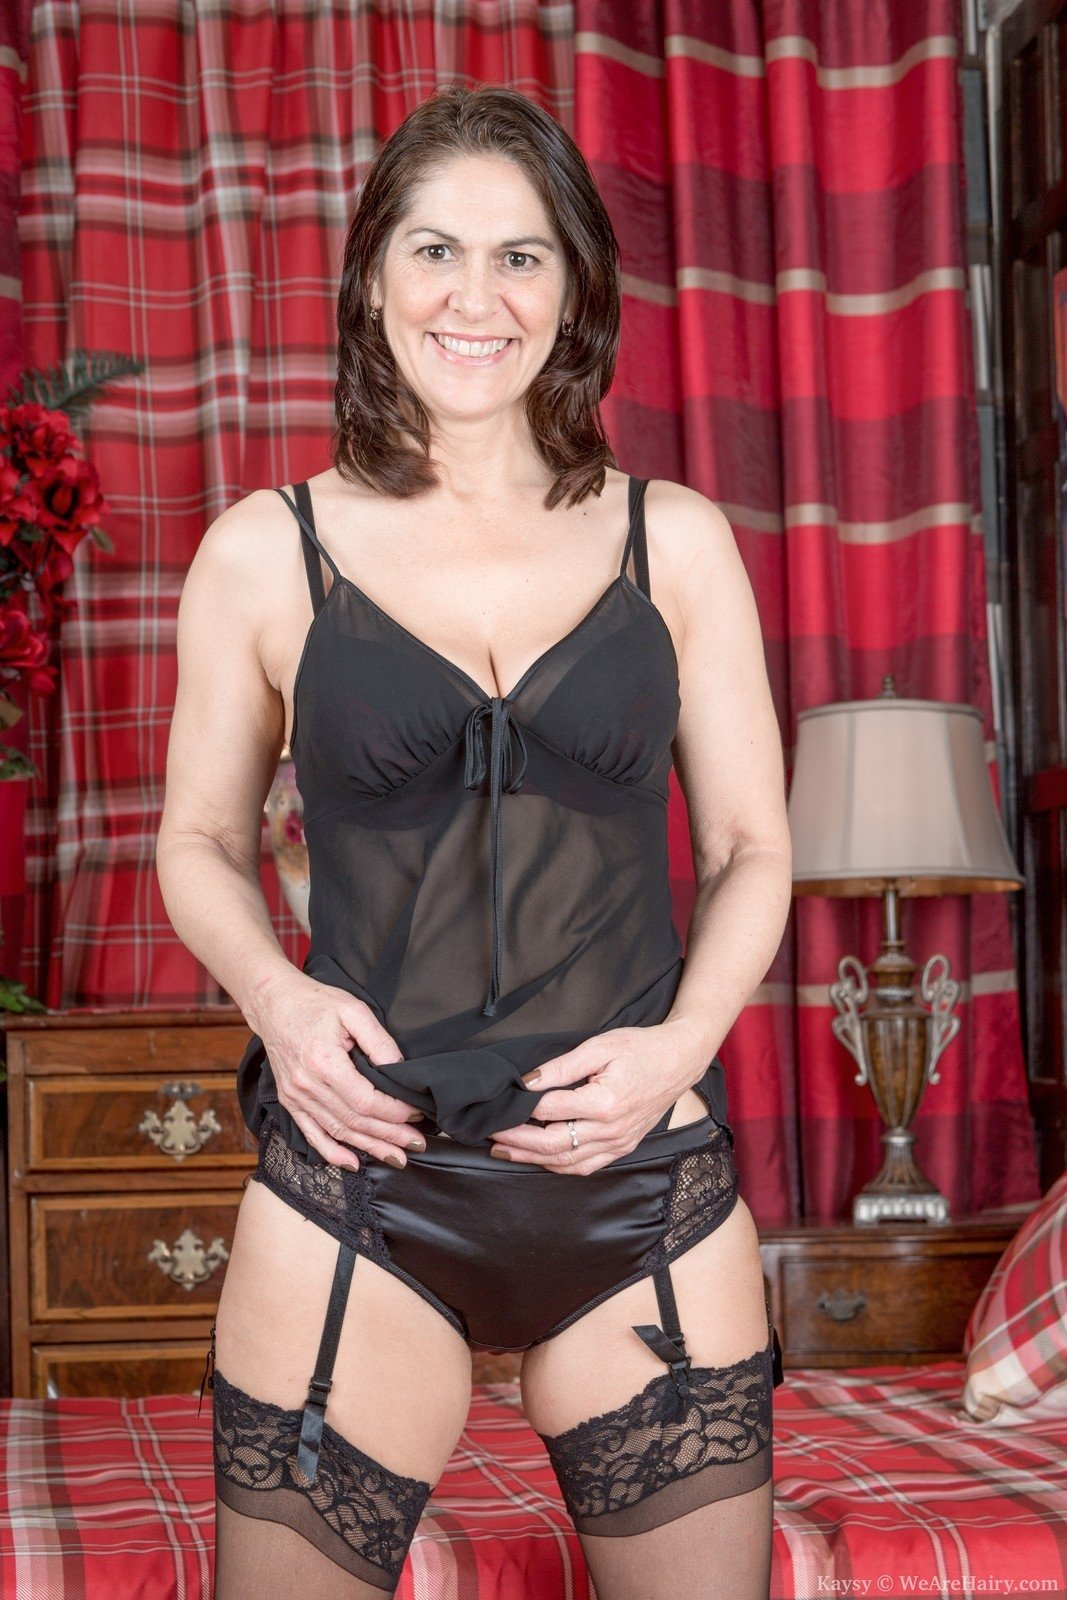 kaysy is 52, and an english mature natural beauty. she strips off